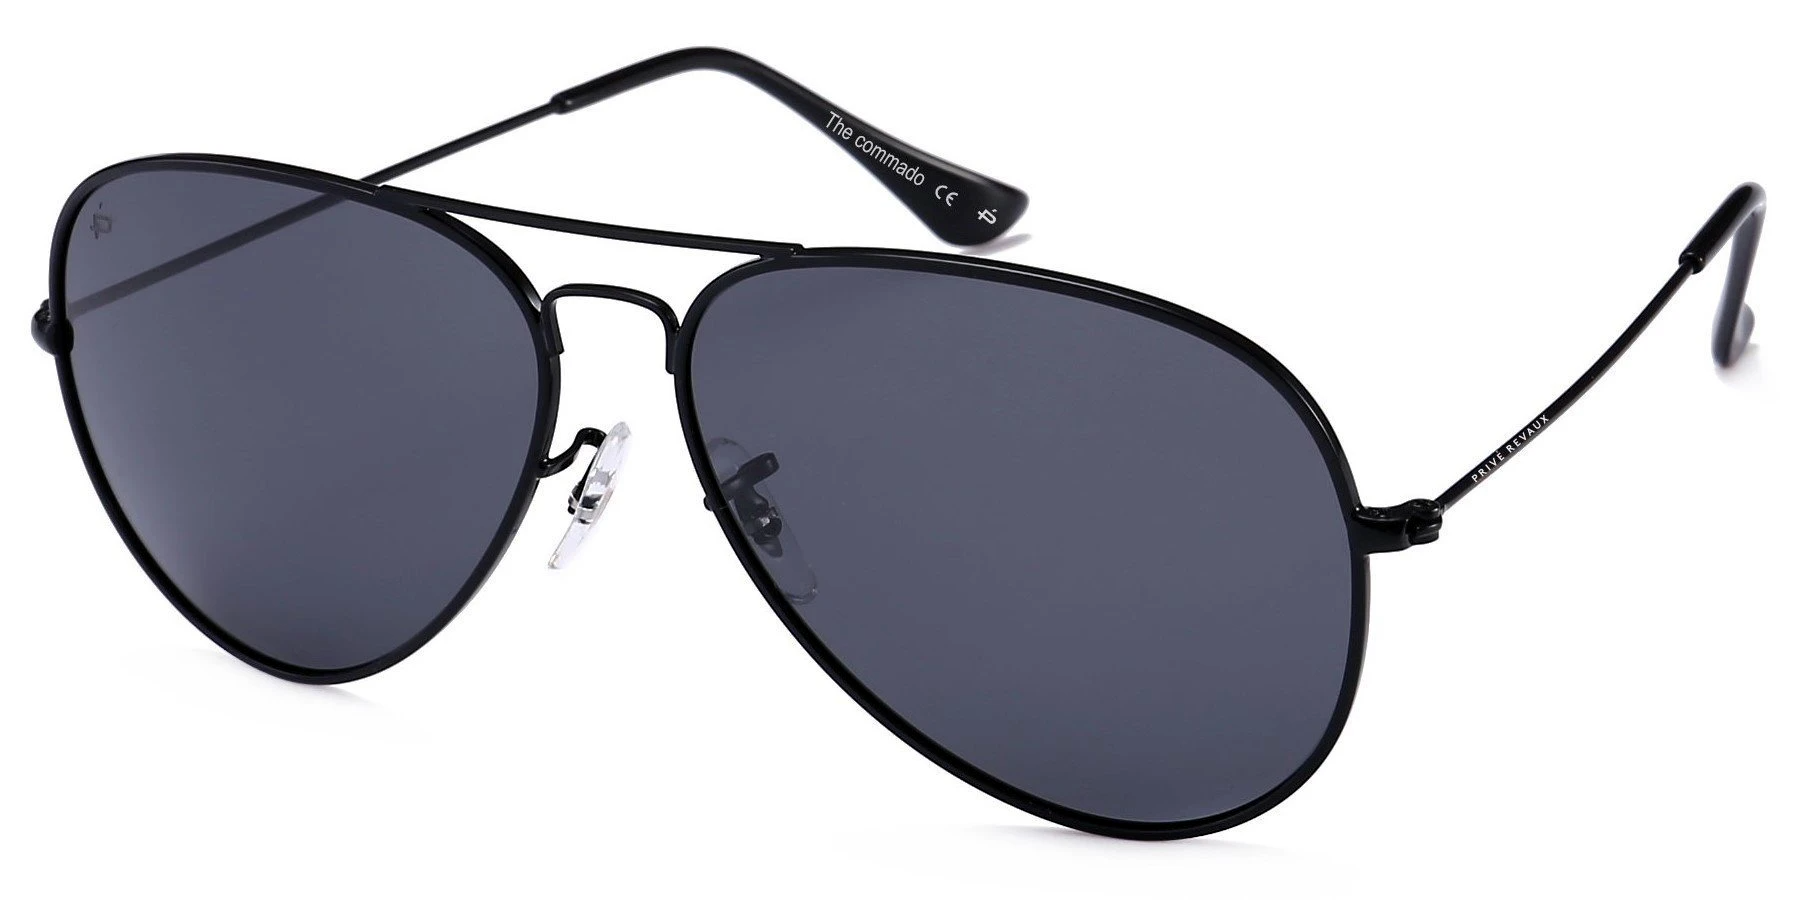 Prive Revaux the commando aviator sunglasses with black frames and black polarized lenses, best aviator sunglasses